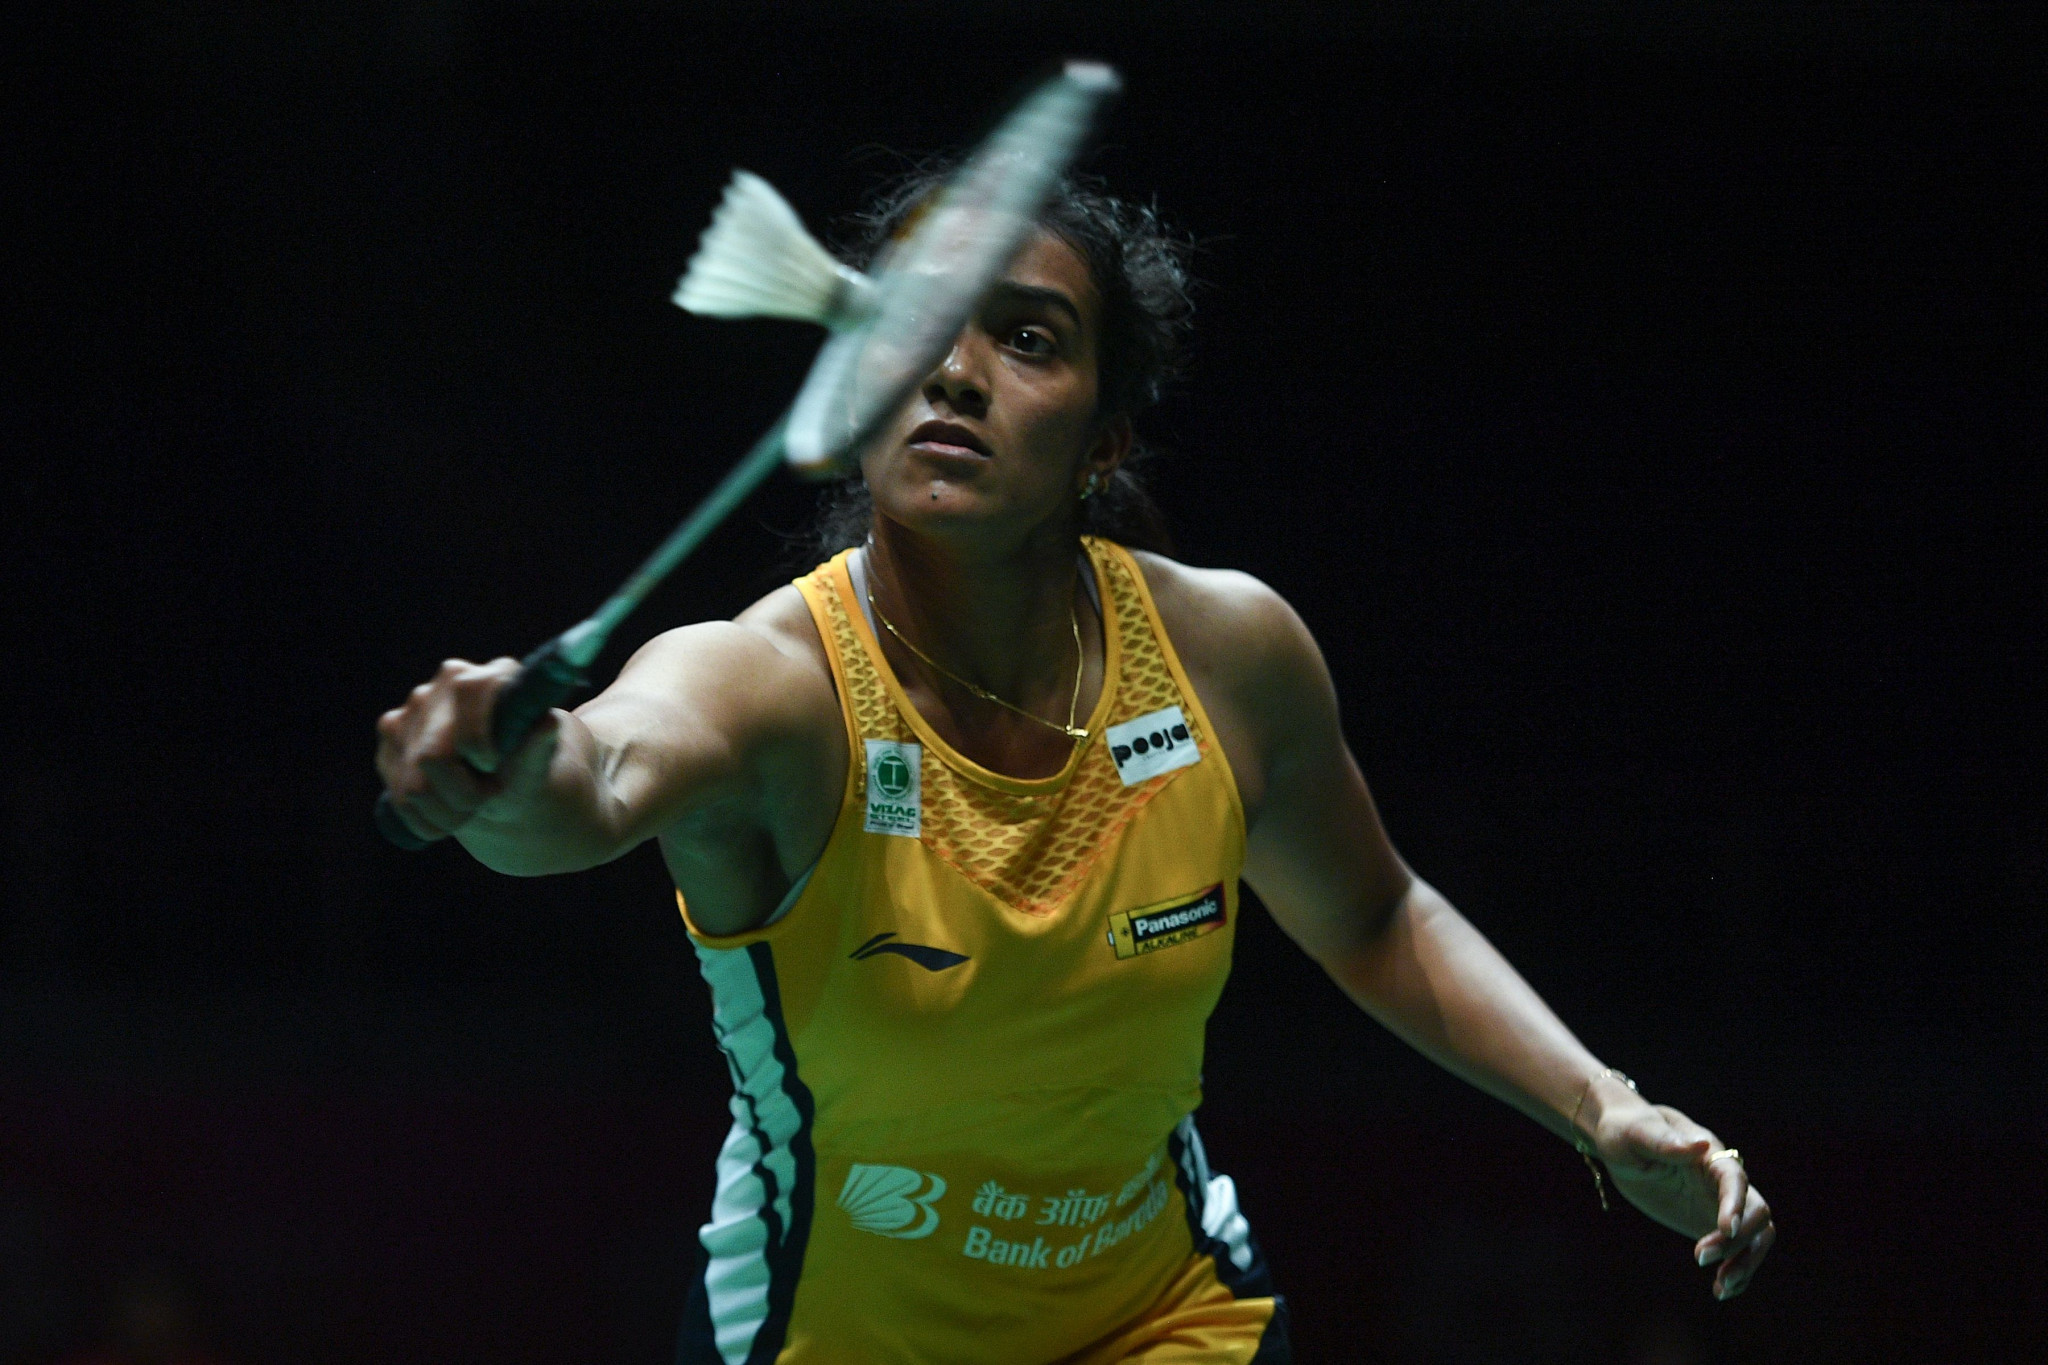 PV Sindhu has switched training bases in the latest shake-up to her Tokyo 2020 preparations ©Getty Images